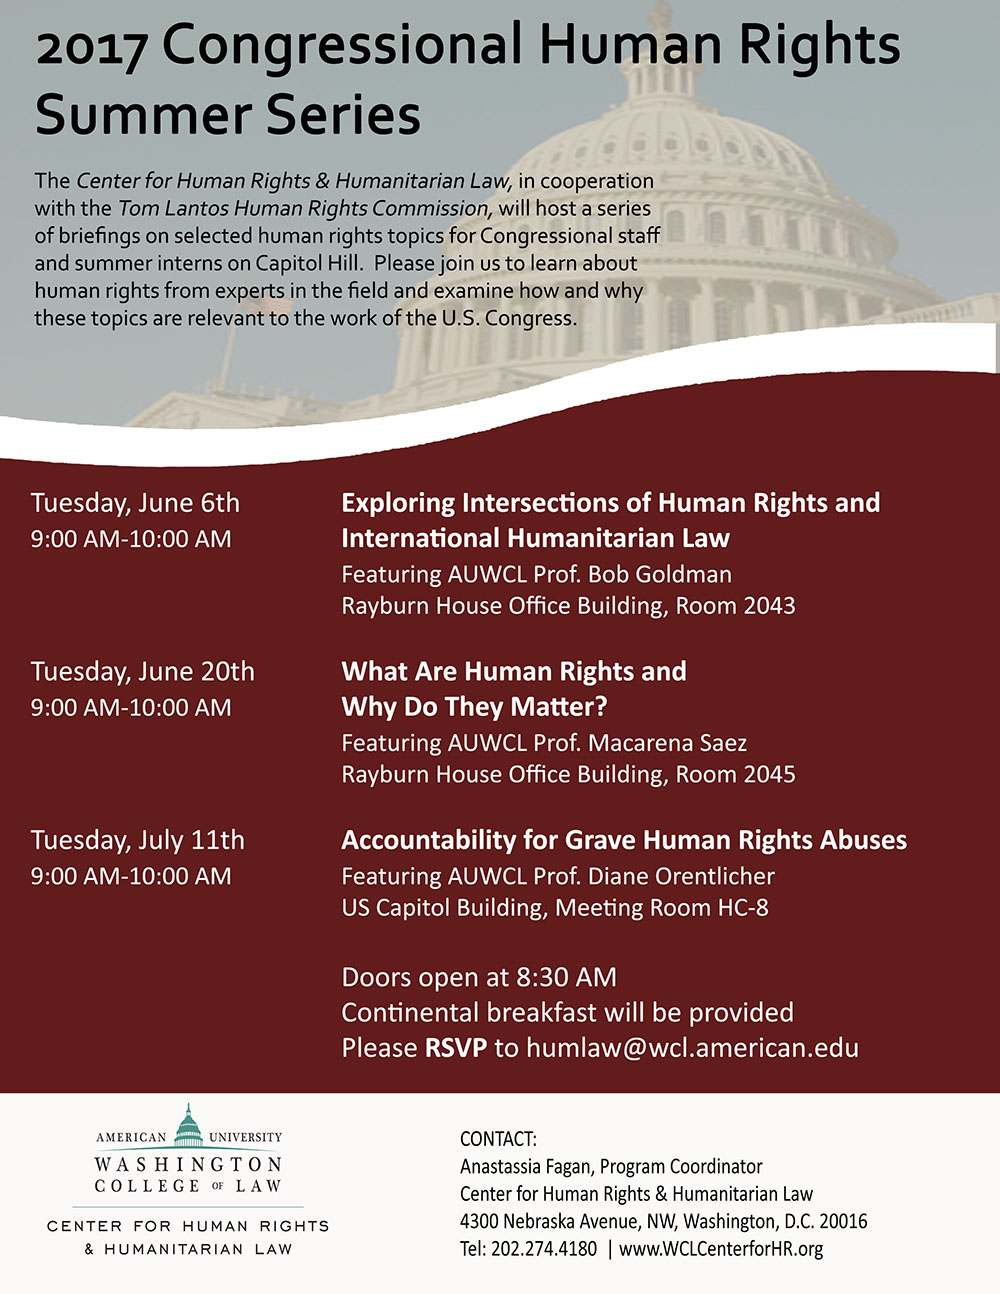 2017 Congressional Human Rights Summer Series Graphic